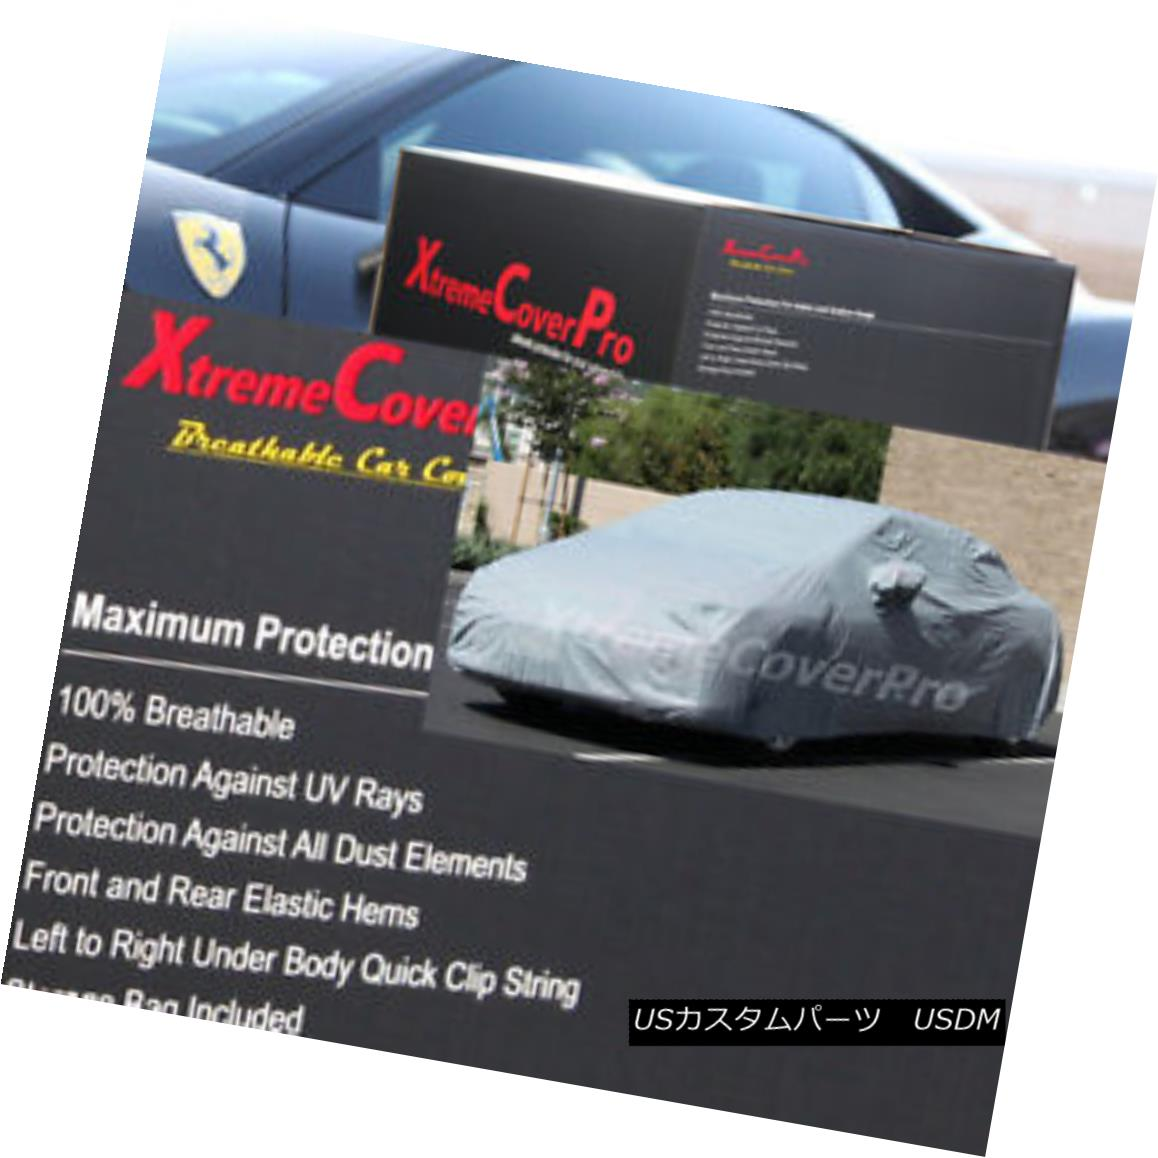 カーカバー 1996 1997 Mercedes S320 S420 S500 S600 Breathable Car Cover w/MirrorPocket 1996年1997年メルセデスS320 S420 S500 S600通気性車カバー付きMirrorPocket